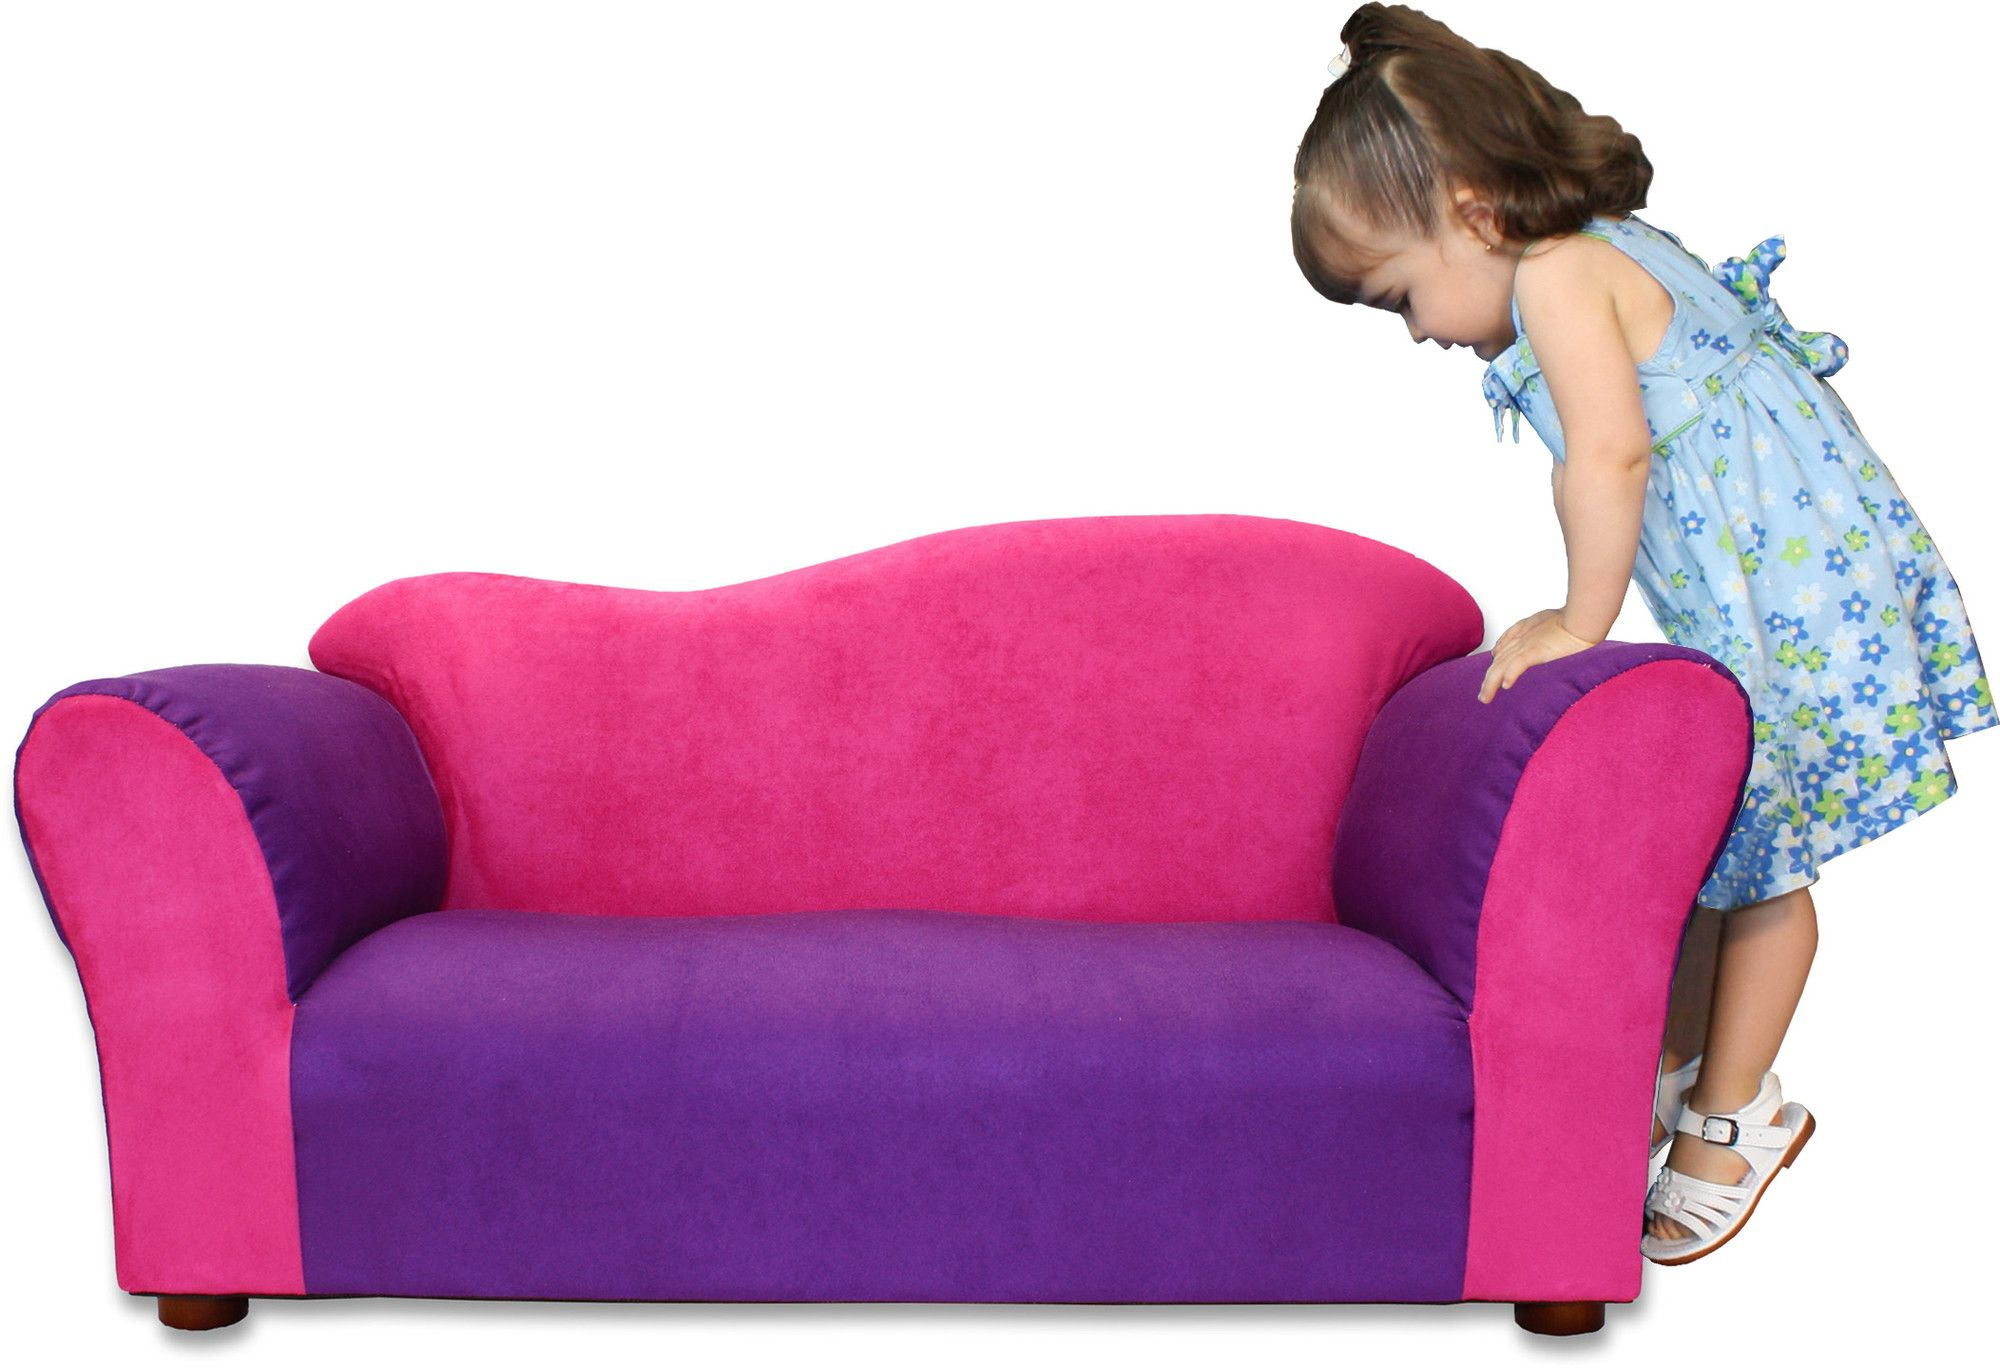 3 Year Old Girls Gifts With Regard To Current Toddler Sofa Chairs (View 5 of 20)